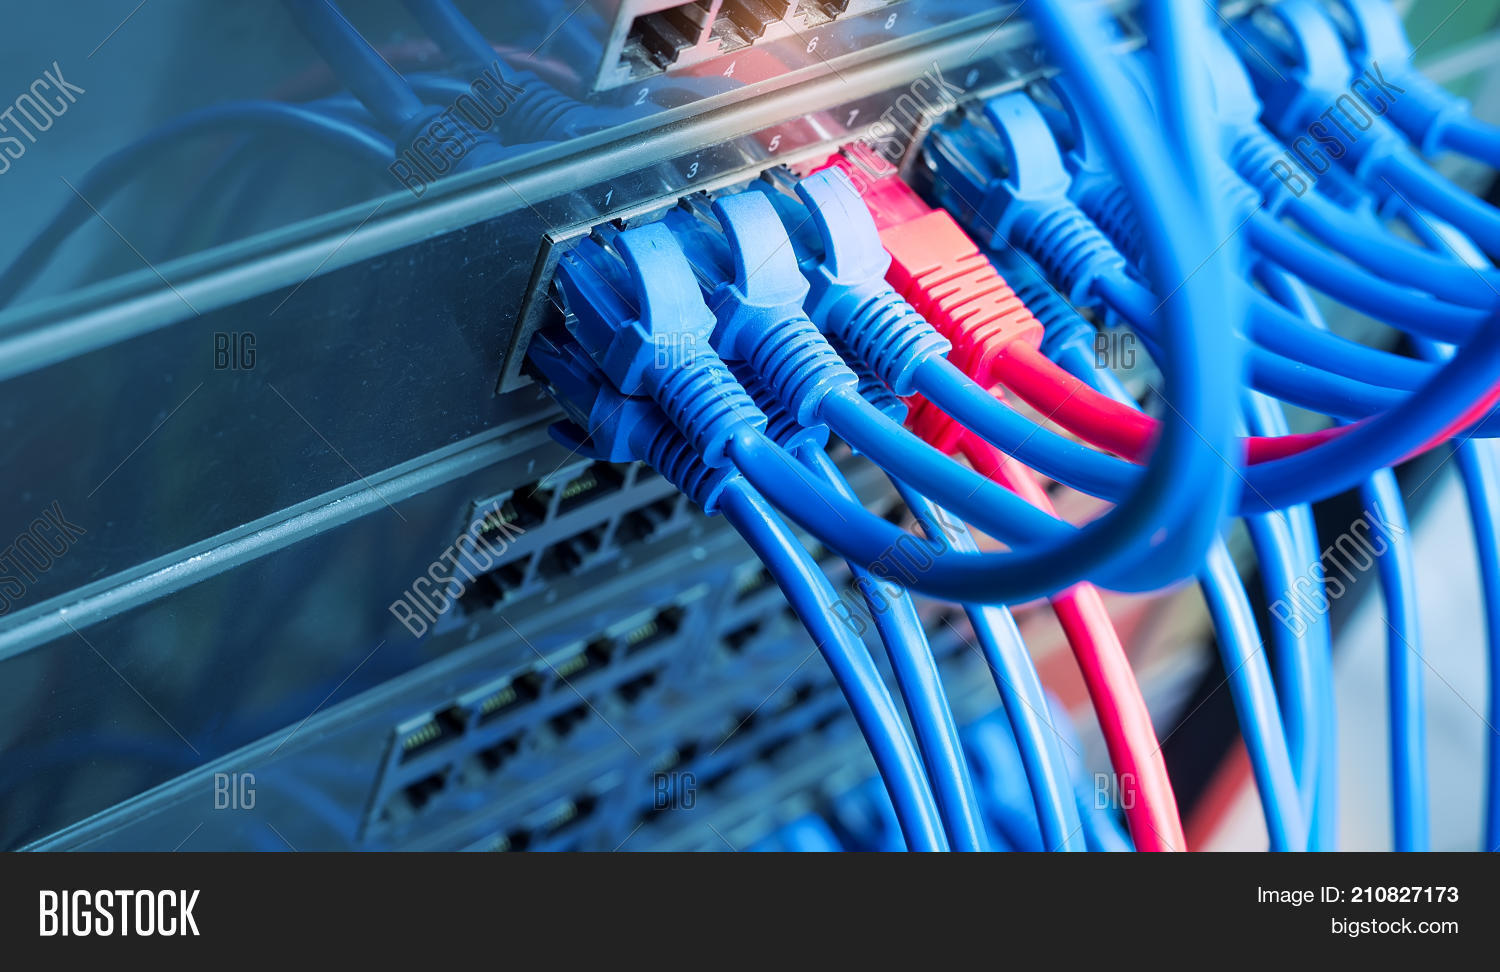 Network Switch Image & Photo (Free Trial) | Bigstock